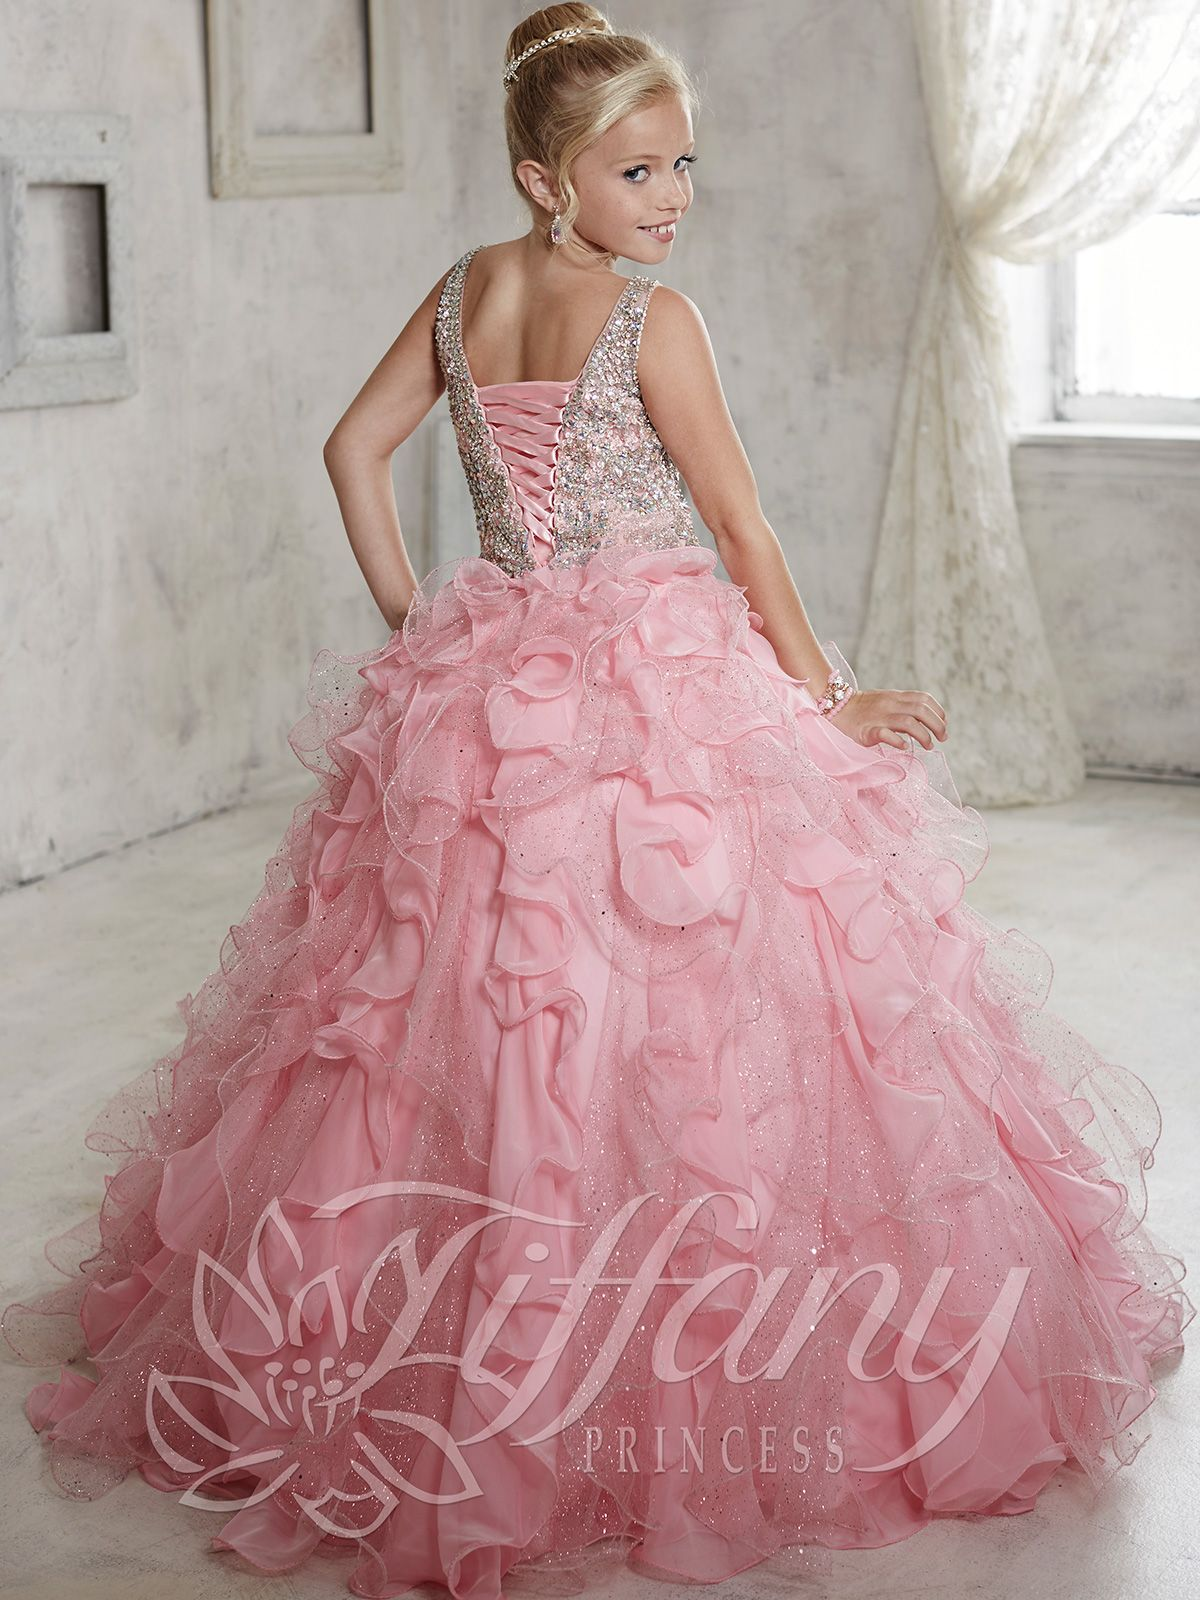 Tiffany Princess 13440 Ruffled Skirt Girls Pageant Gown | pageant ...